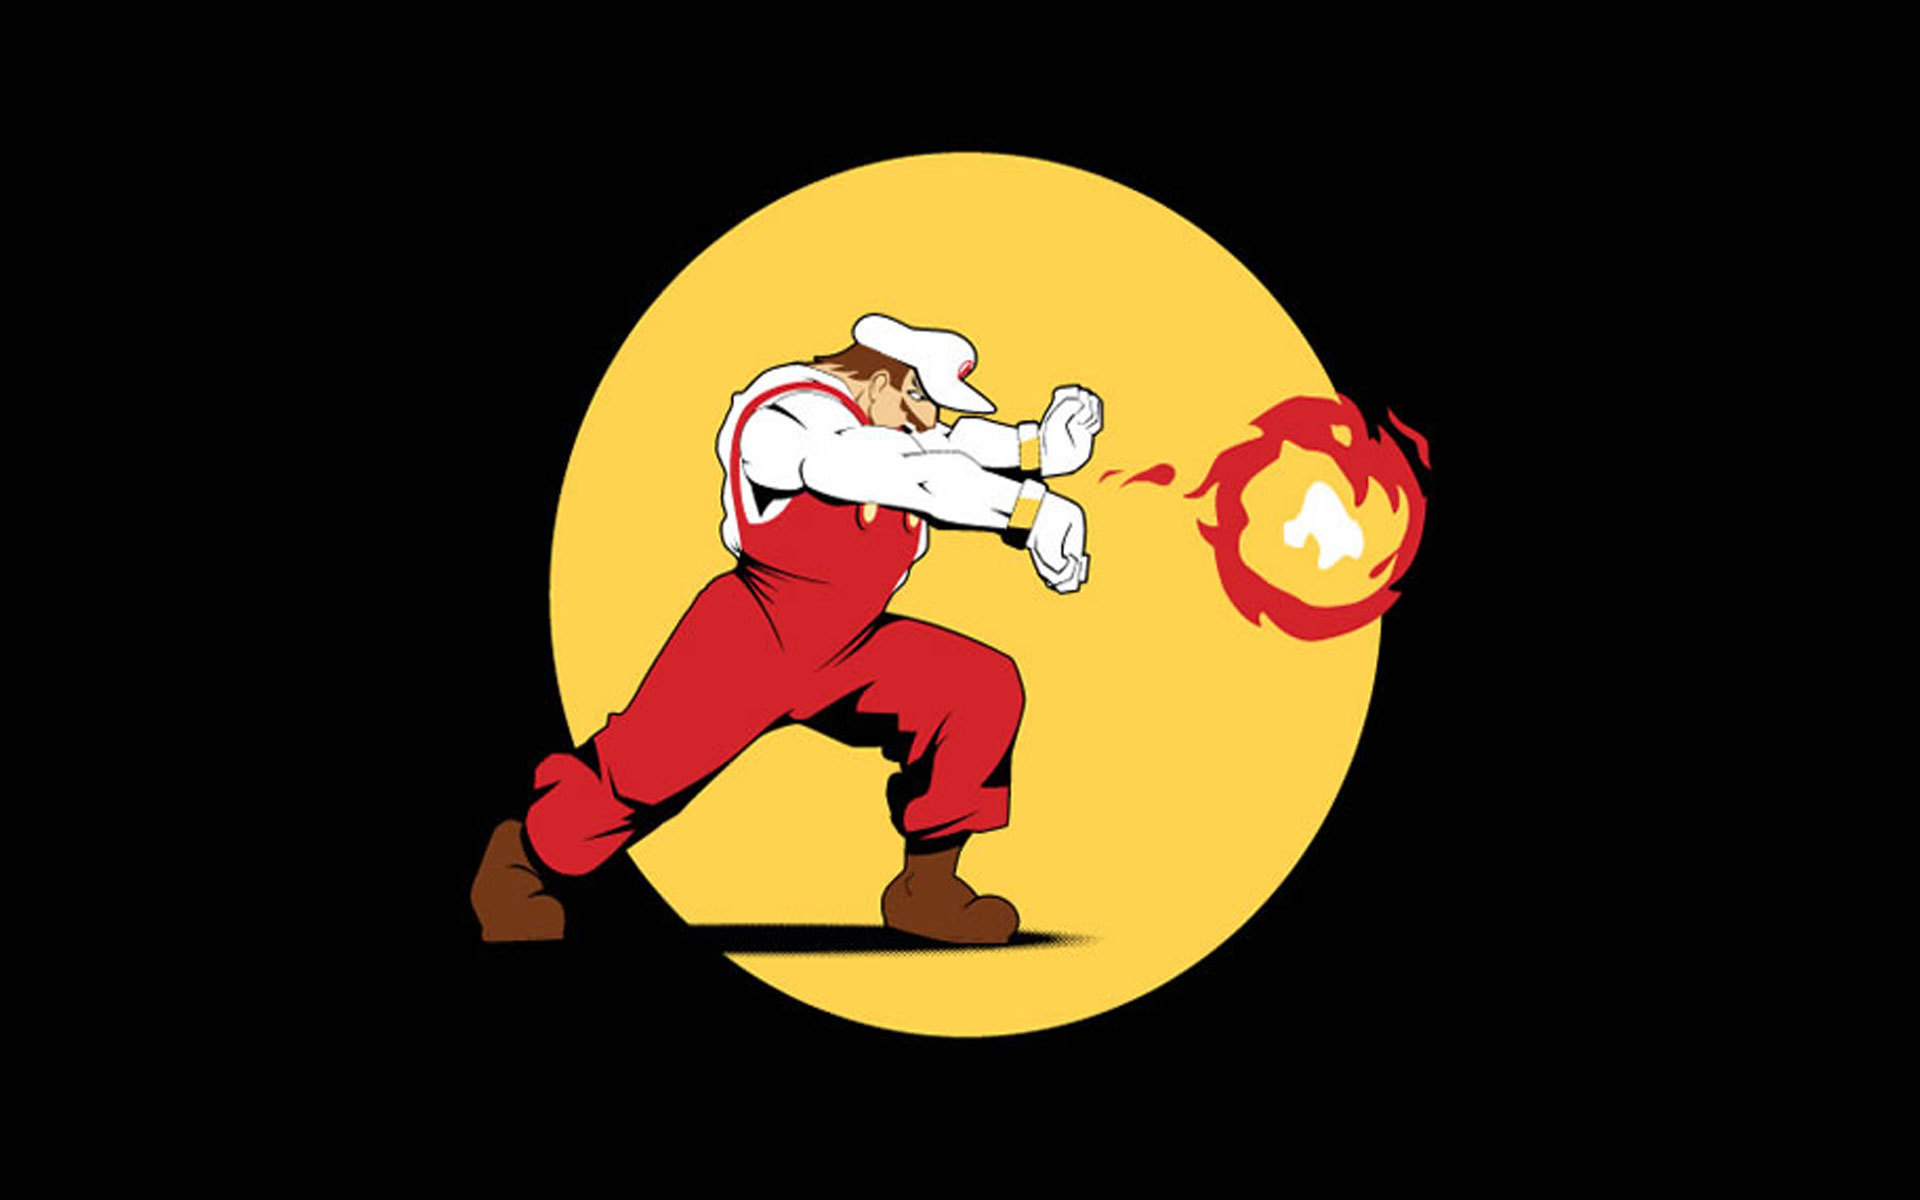 Super Mario cartoonish hadouken HD Wallpaper